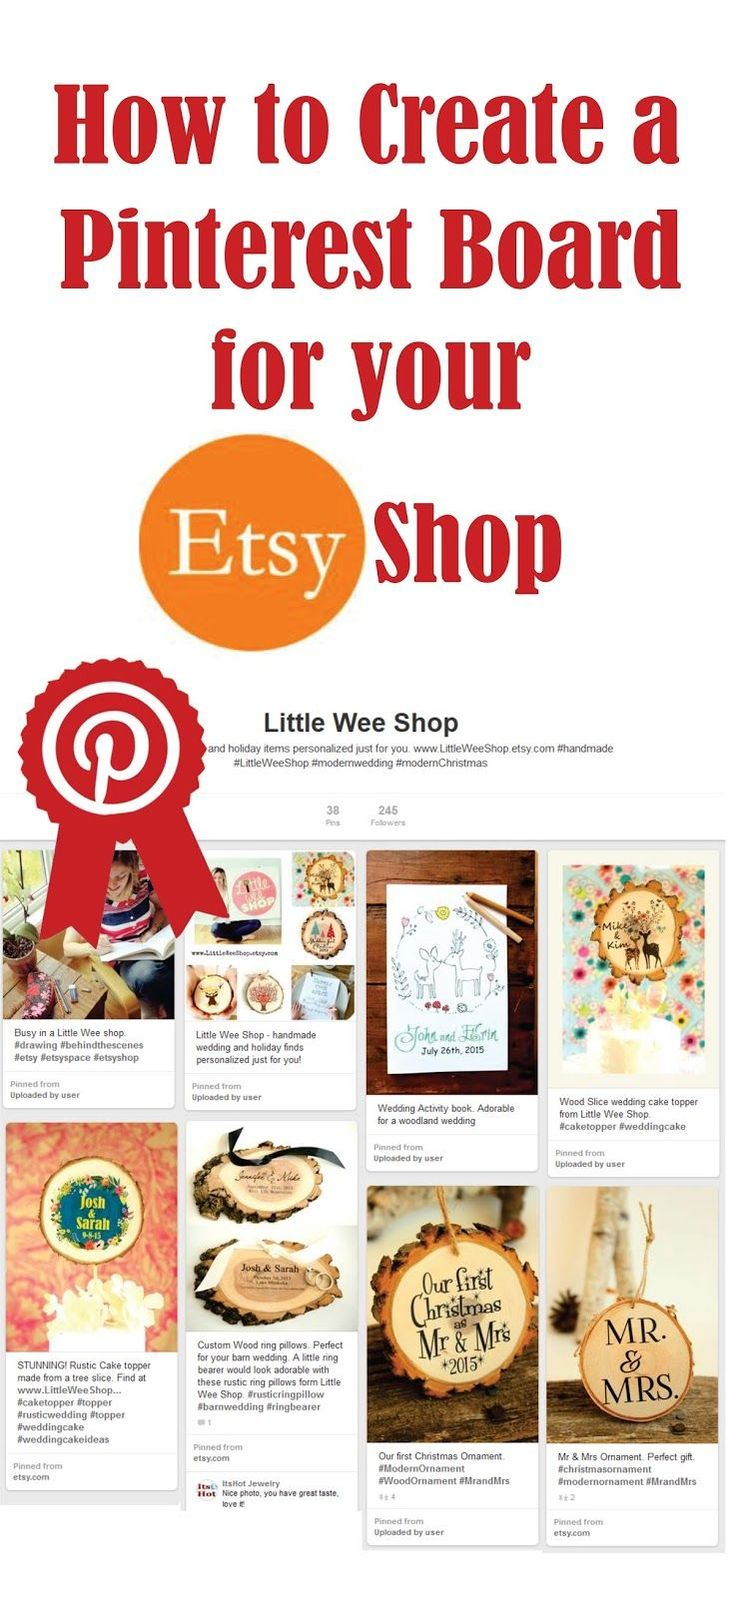 889 best etsy biz tips images on Pinterest | Business tips, Craft ...